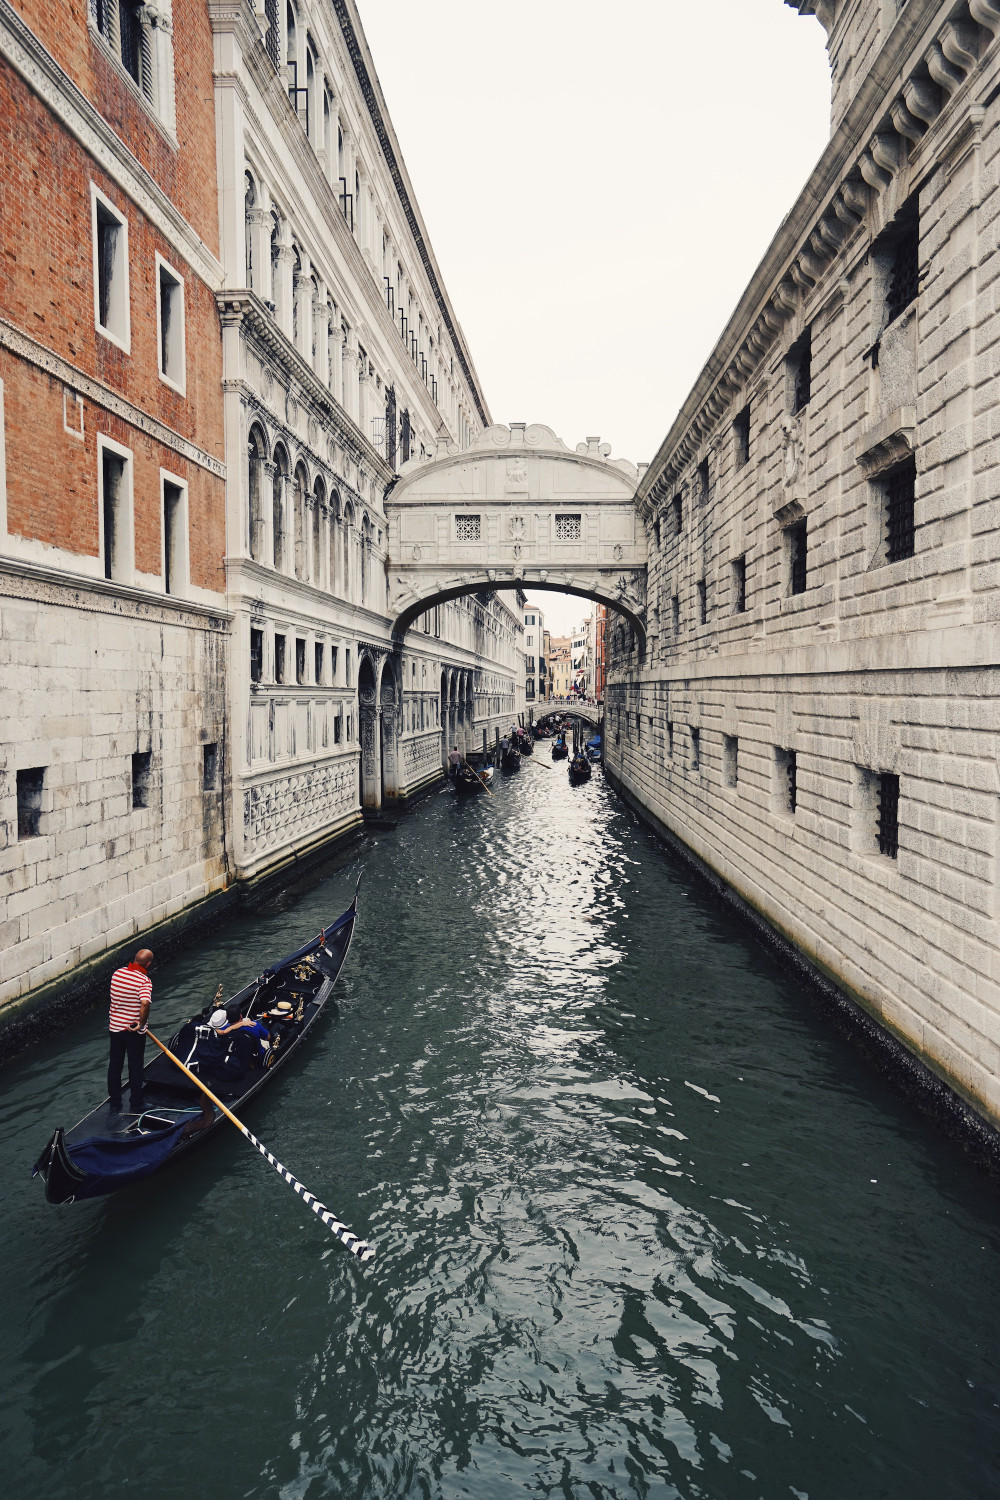 bridge-of-sighs-2-dante-vincent-photography